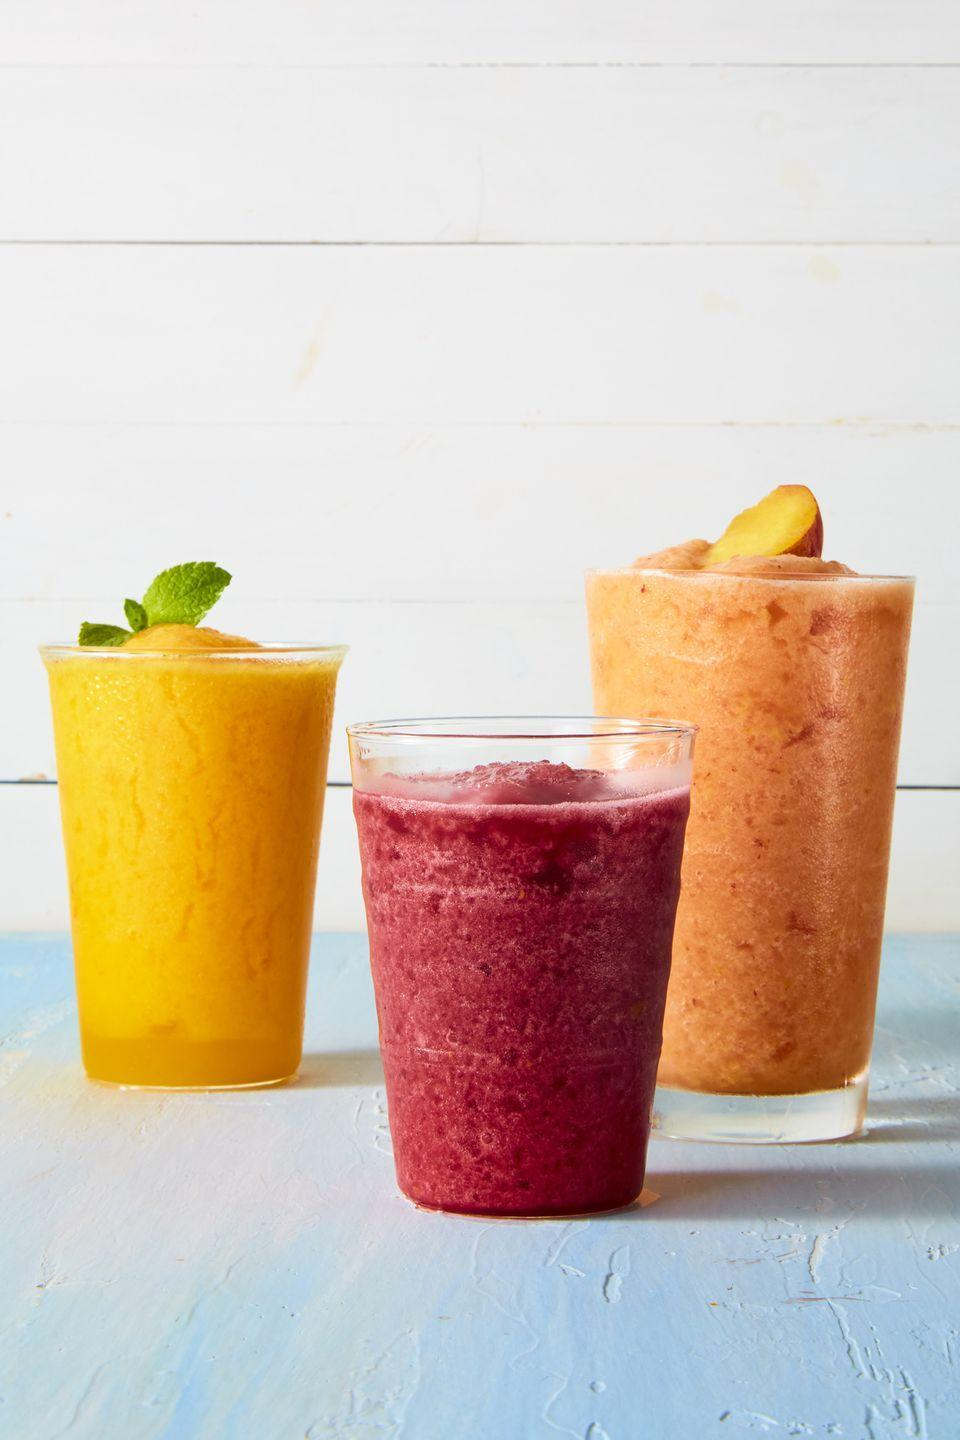 """<p>Beat the inevitable heat with a frozen thirst-quencher. If you're looking for something more tropical, try <a href=""""https://www.goodhousekeeping.com/food-recipes/a44687/mango-limeade-slushies-recipe/"""" rel=""""nofollow noopener"""" target=""""_blank"""" data-ylk=""""slk:this mango version"""" class=""""link rapid-noclick-resp"""">this mango version</a> instead. </p><p><em><a href=""""https://www.goodhousekeeping.com/food-recipes/a44684/raspberry-limeade-slushies-recipe/"""" rel=""""nofollow noopener"""" target=""""_blank"""" data-ylk=""""slk:Get the recipe for Raspberry Limeade Slushies »"""" class=""""link rapid-noclick-resp"""">Get the recipe for Raspberry Limeade Slushies »</a></em></p>"""